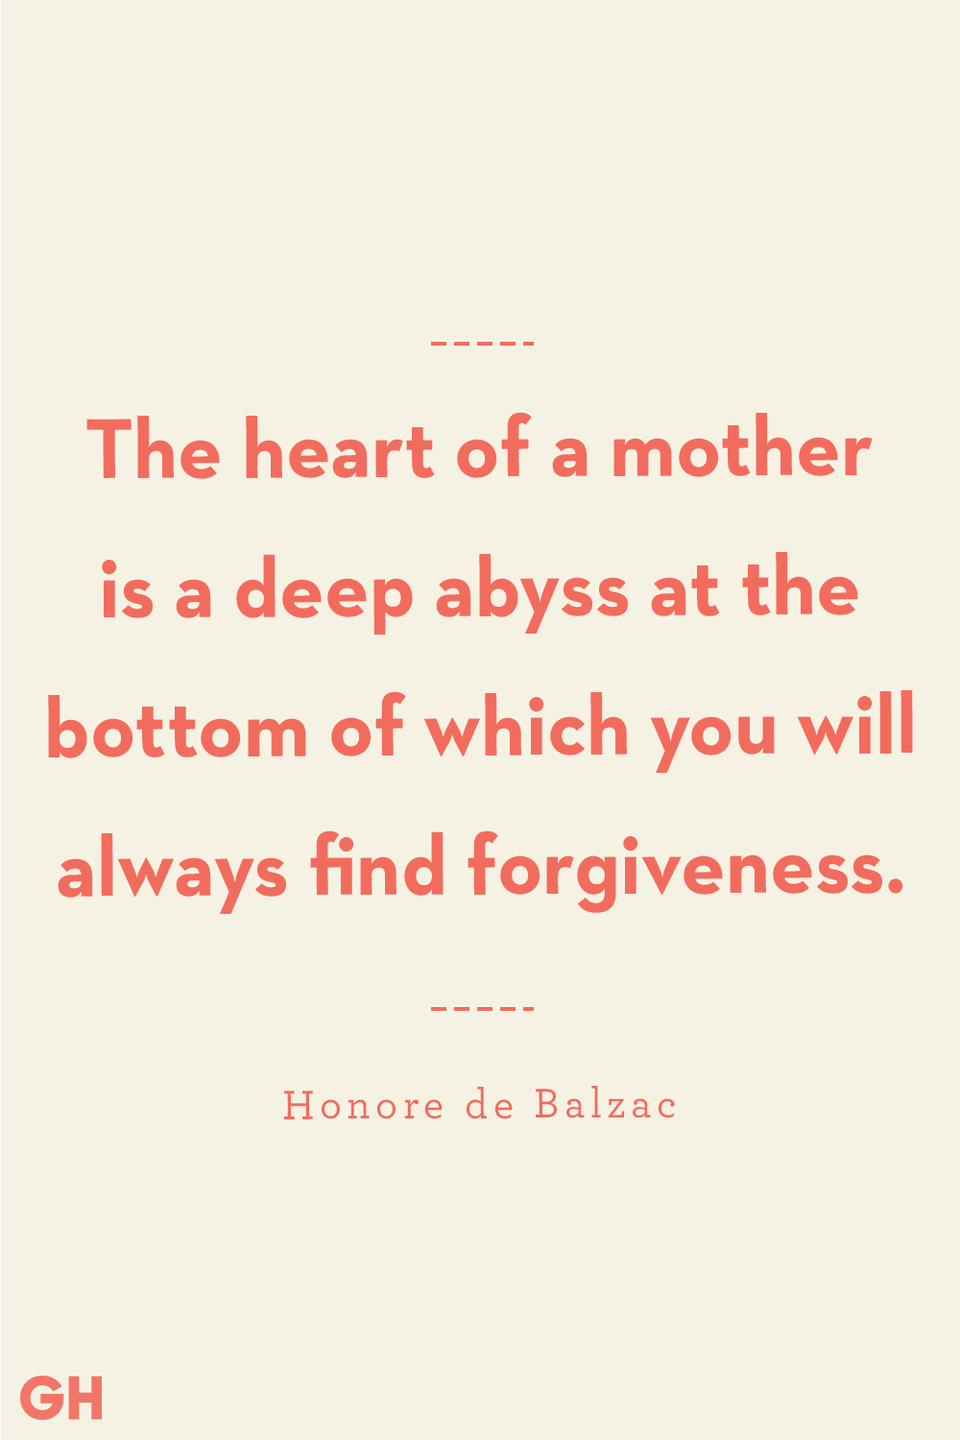 <p>The heart of a mother is a deep abyss at the bottom of which you will always find forgiveness.</p>